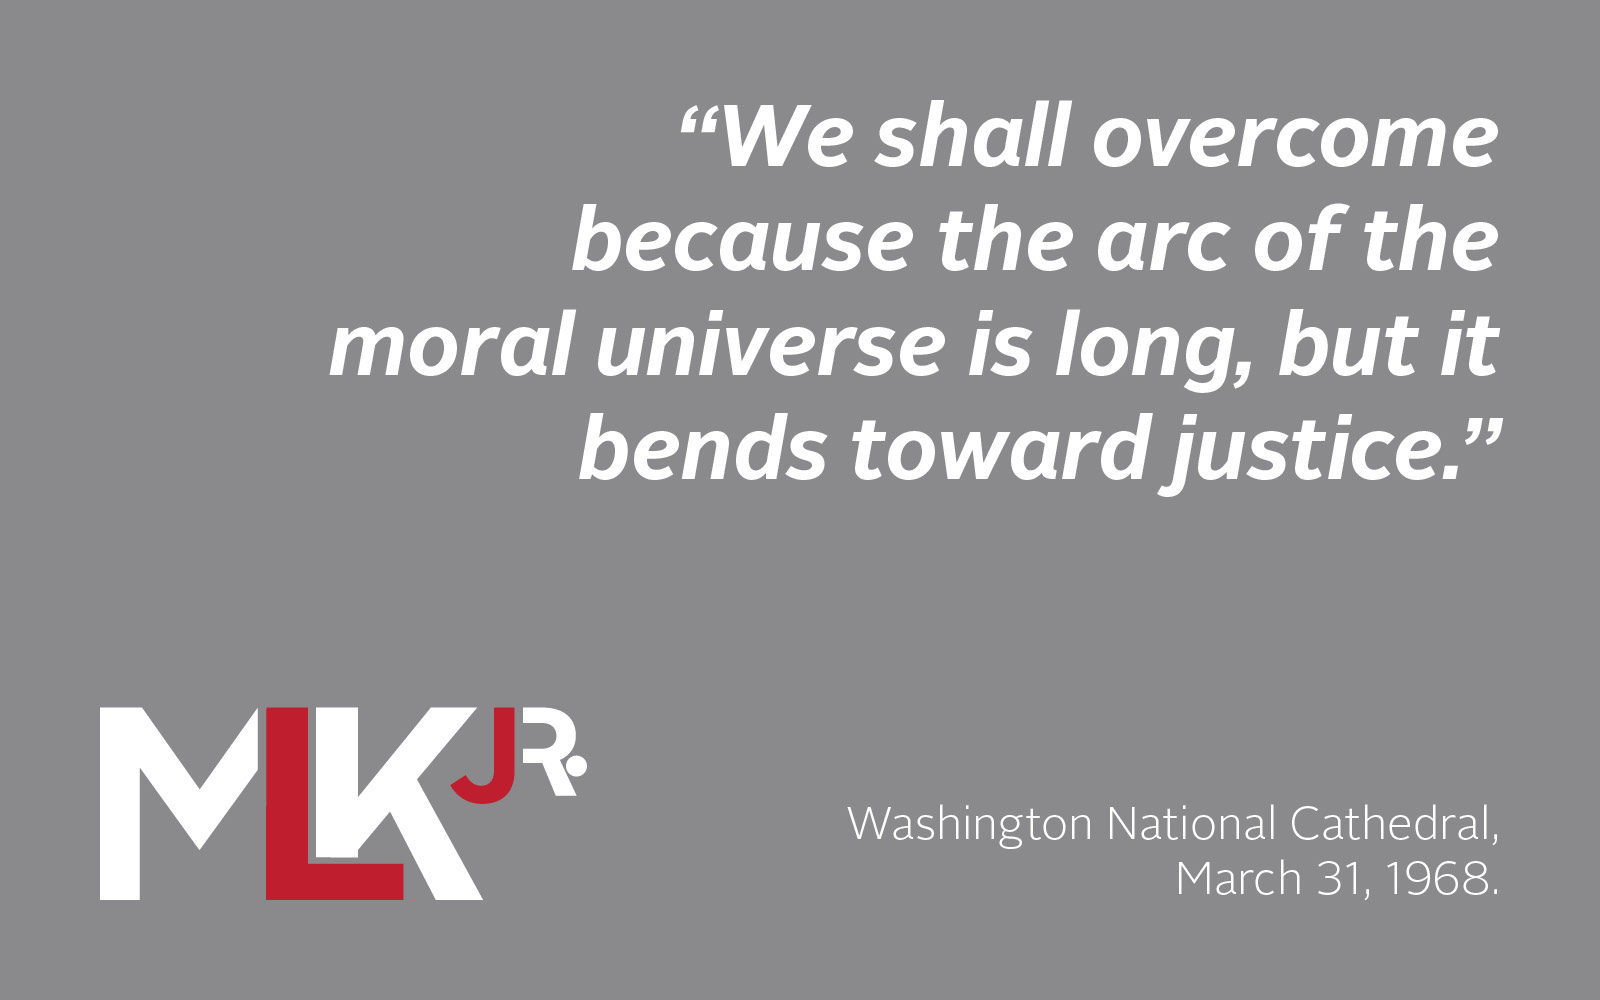 MLK quote